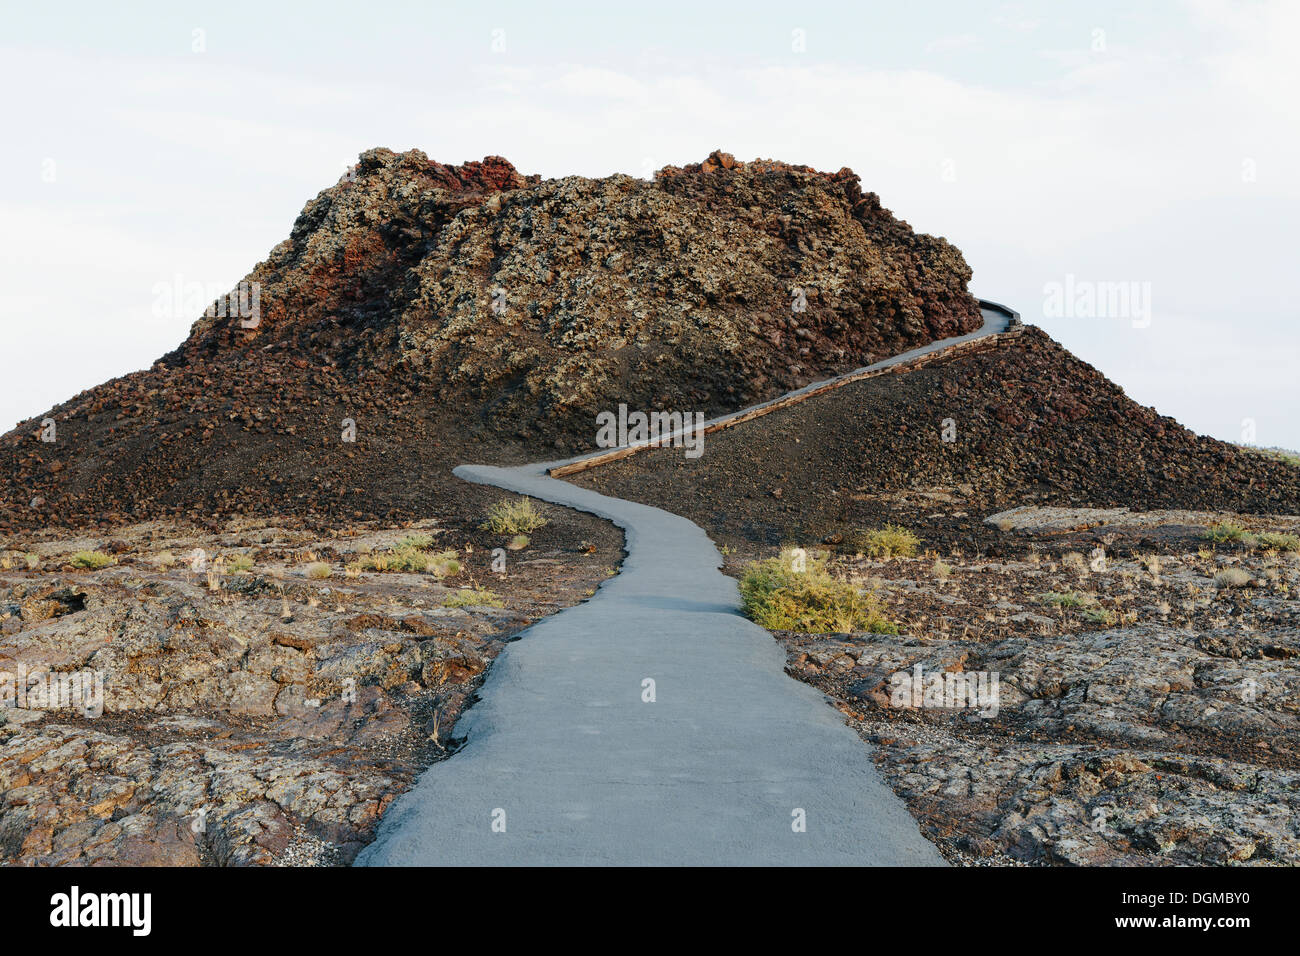 A paved pathway up into the lava fields of the Craters of the Moon national monument and preserve in Butte County Idaho. - Stock Image